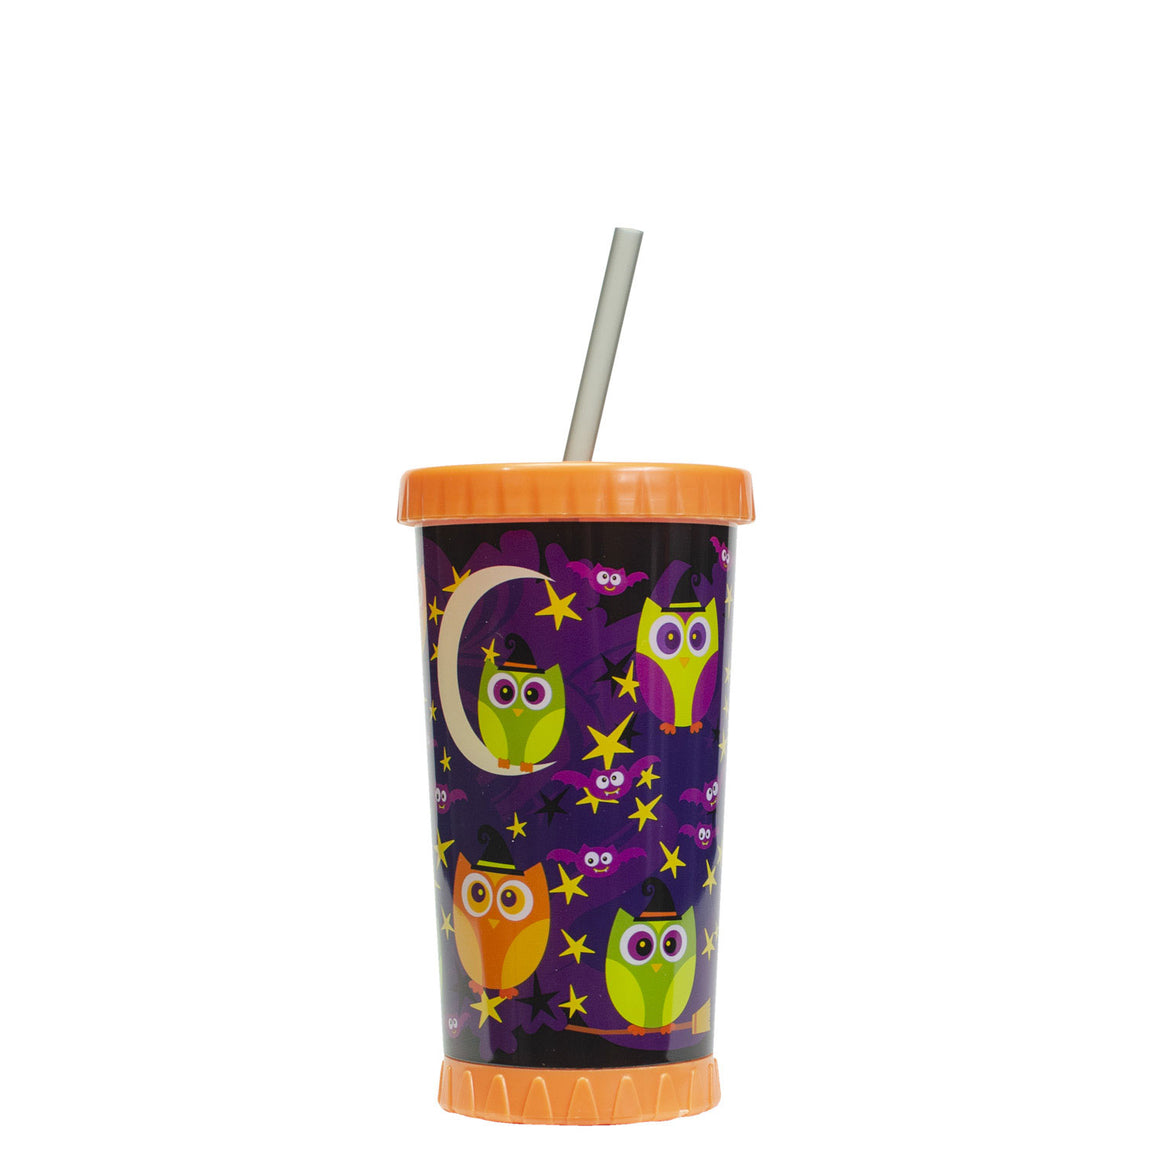 Orange / Magic Night Owls 16 Oz Light Up Halloween Tumbler at Cool Gear Halloween